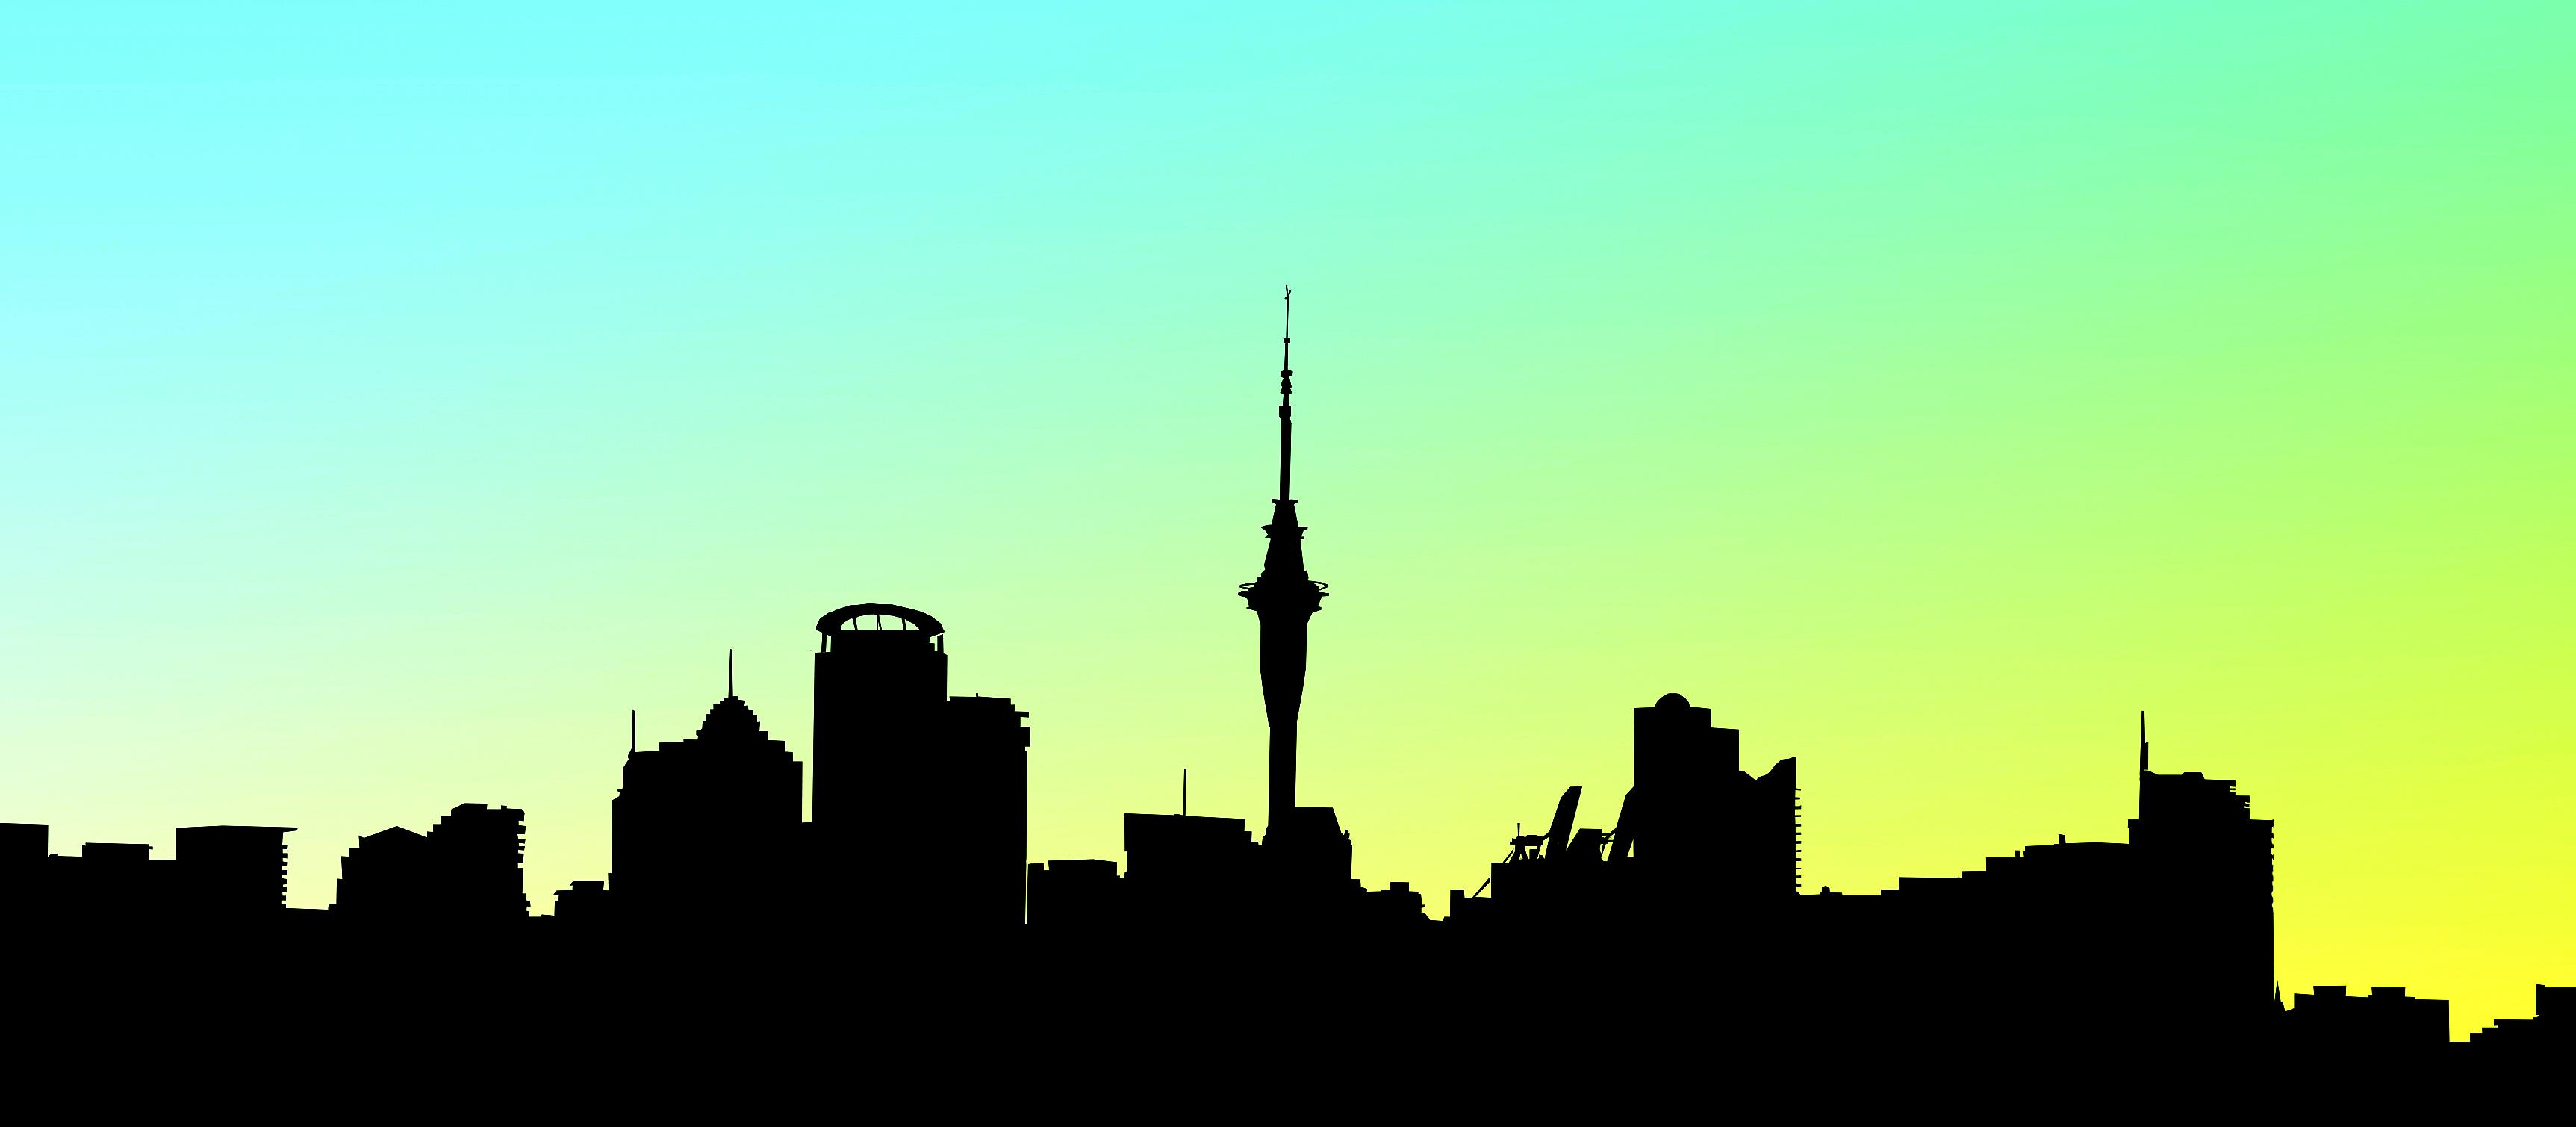 3450x1509 Four More Clinics Boost Nirvana's Reach In Auckland New Zealand